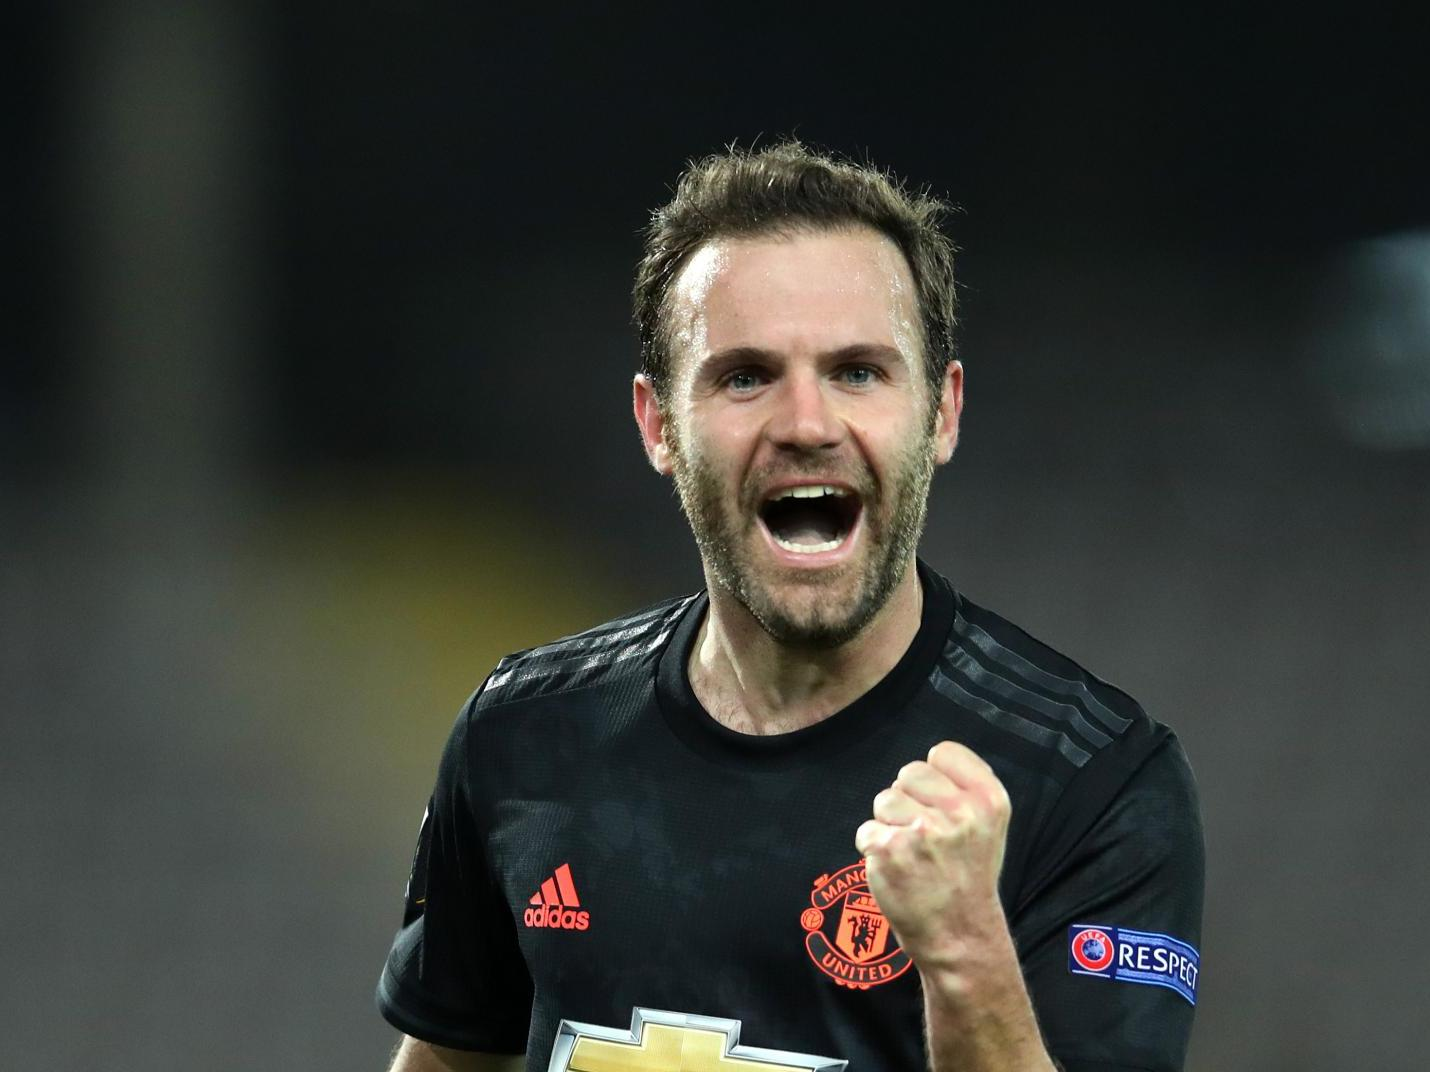 Juan Mata embracing Manchester United mentor role to help next generation at Old Trafford - The Independent